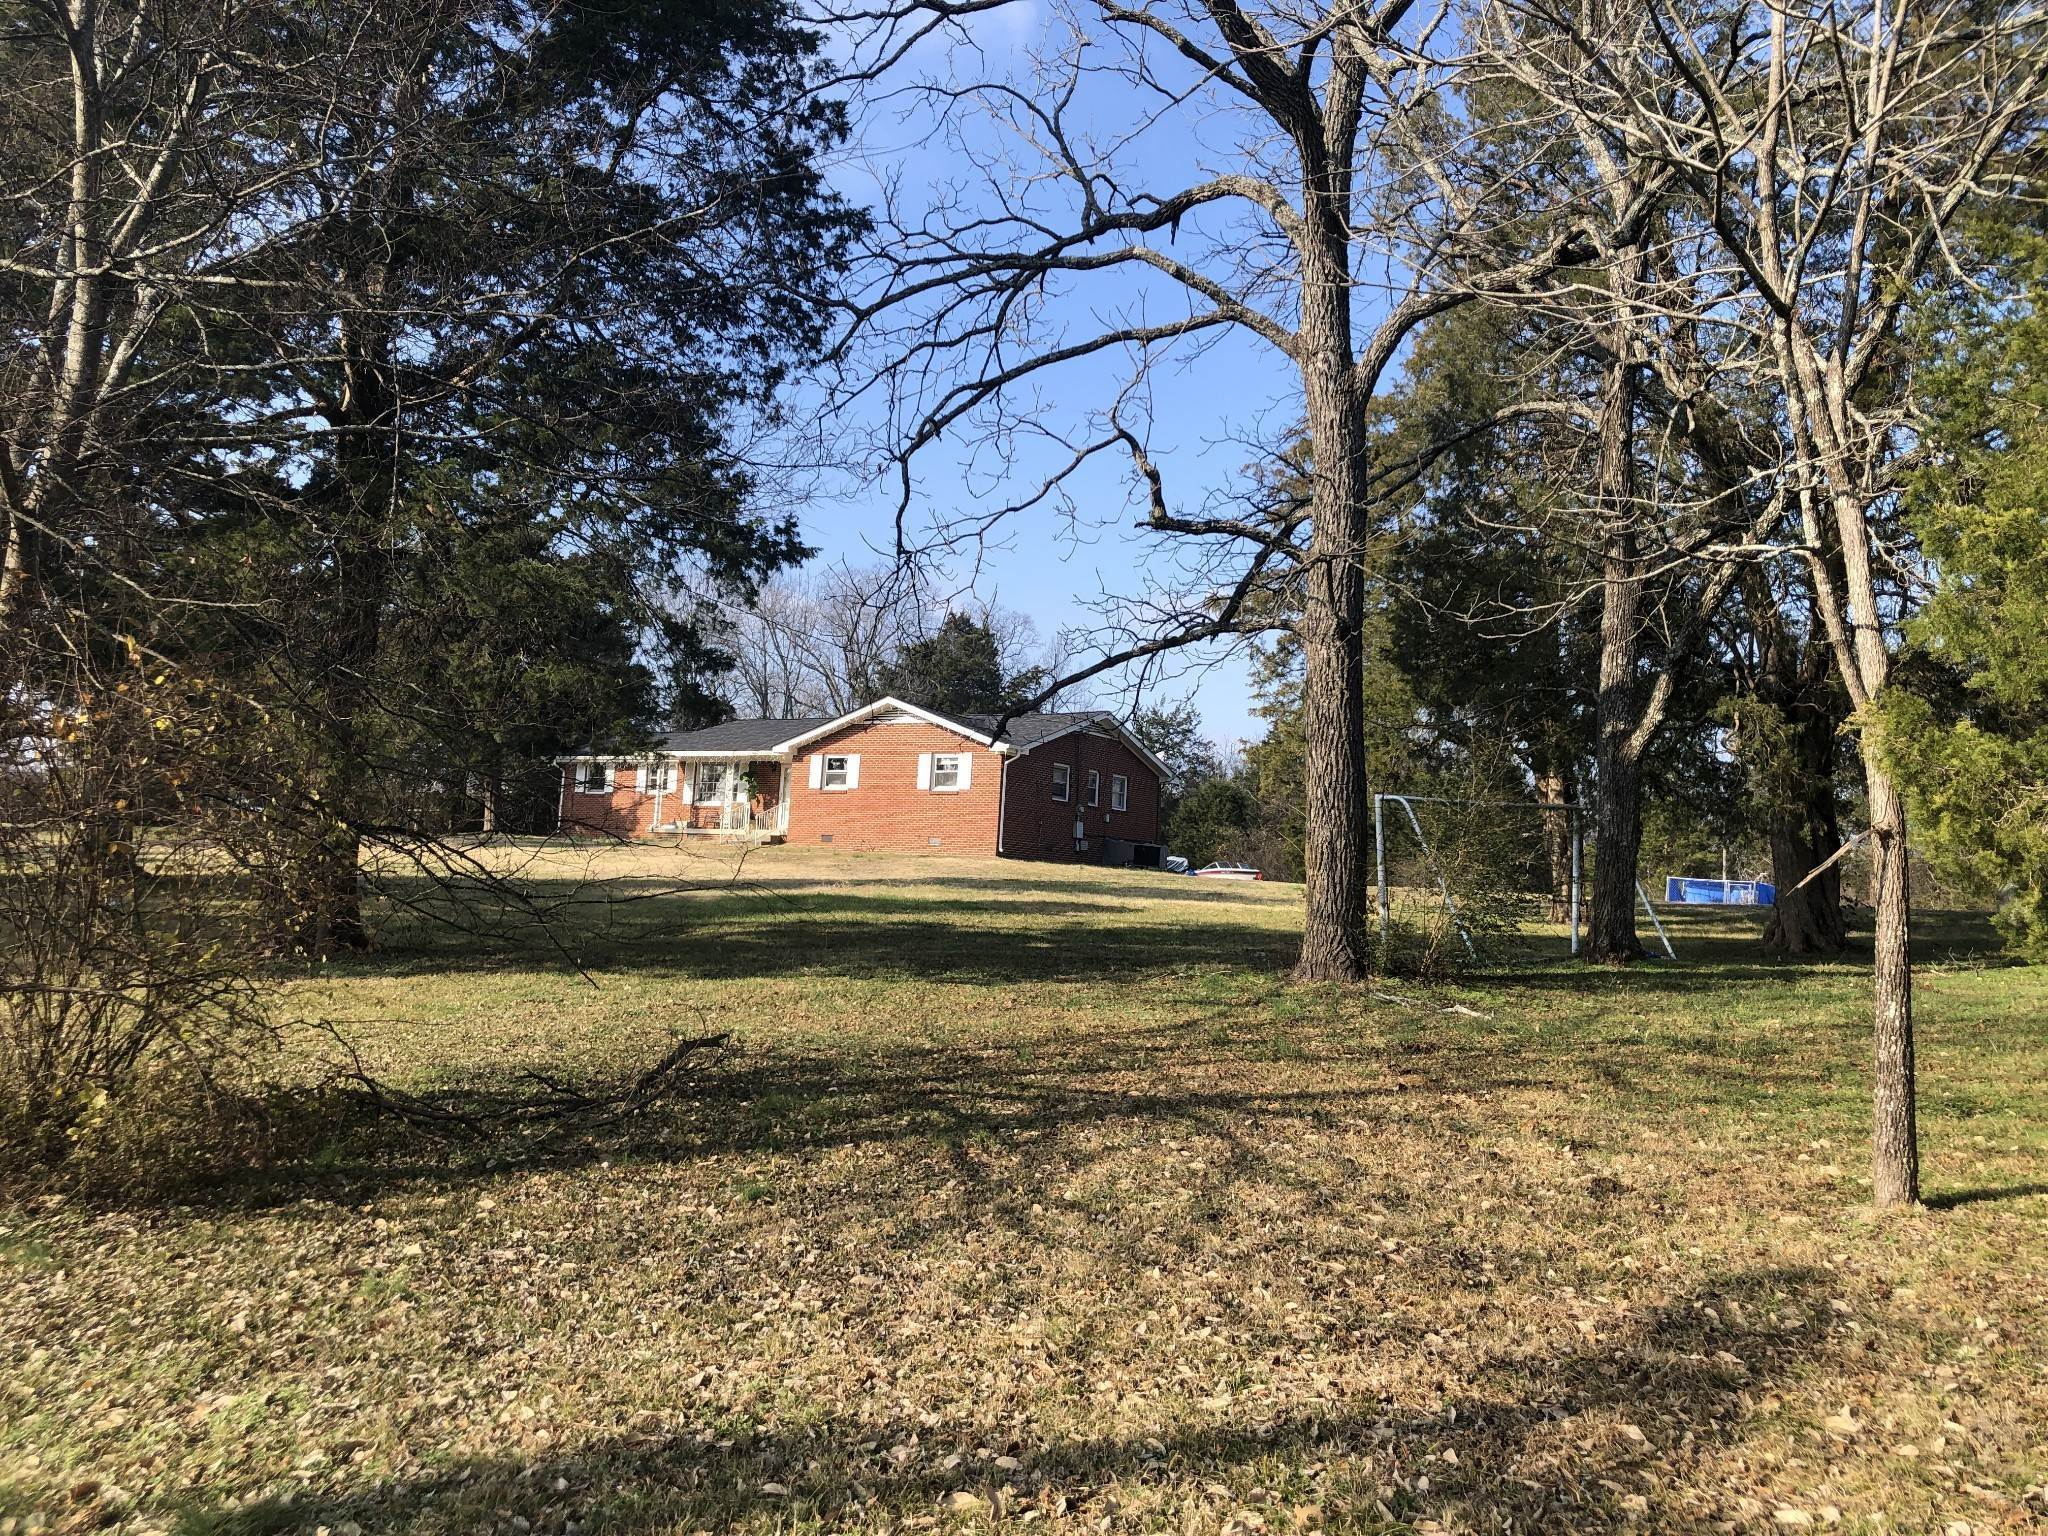 Land for Sale at 433 Old Hickory Blvd Antioch, Tennessee 37013 United States